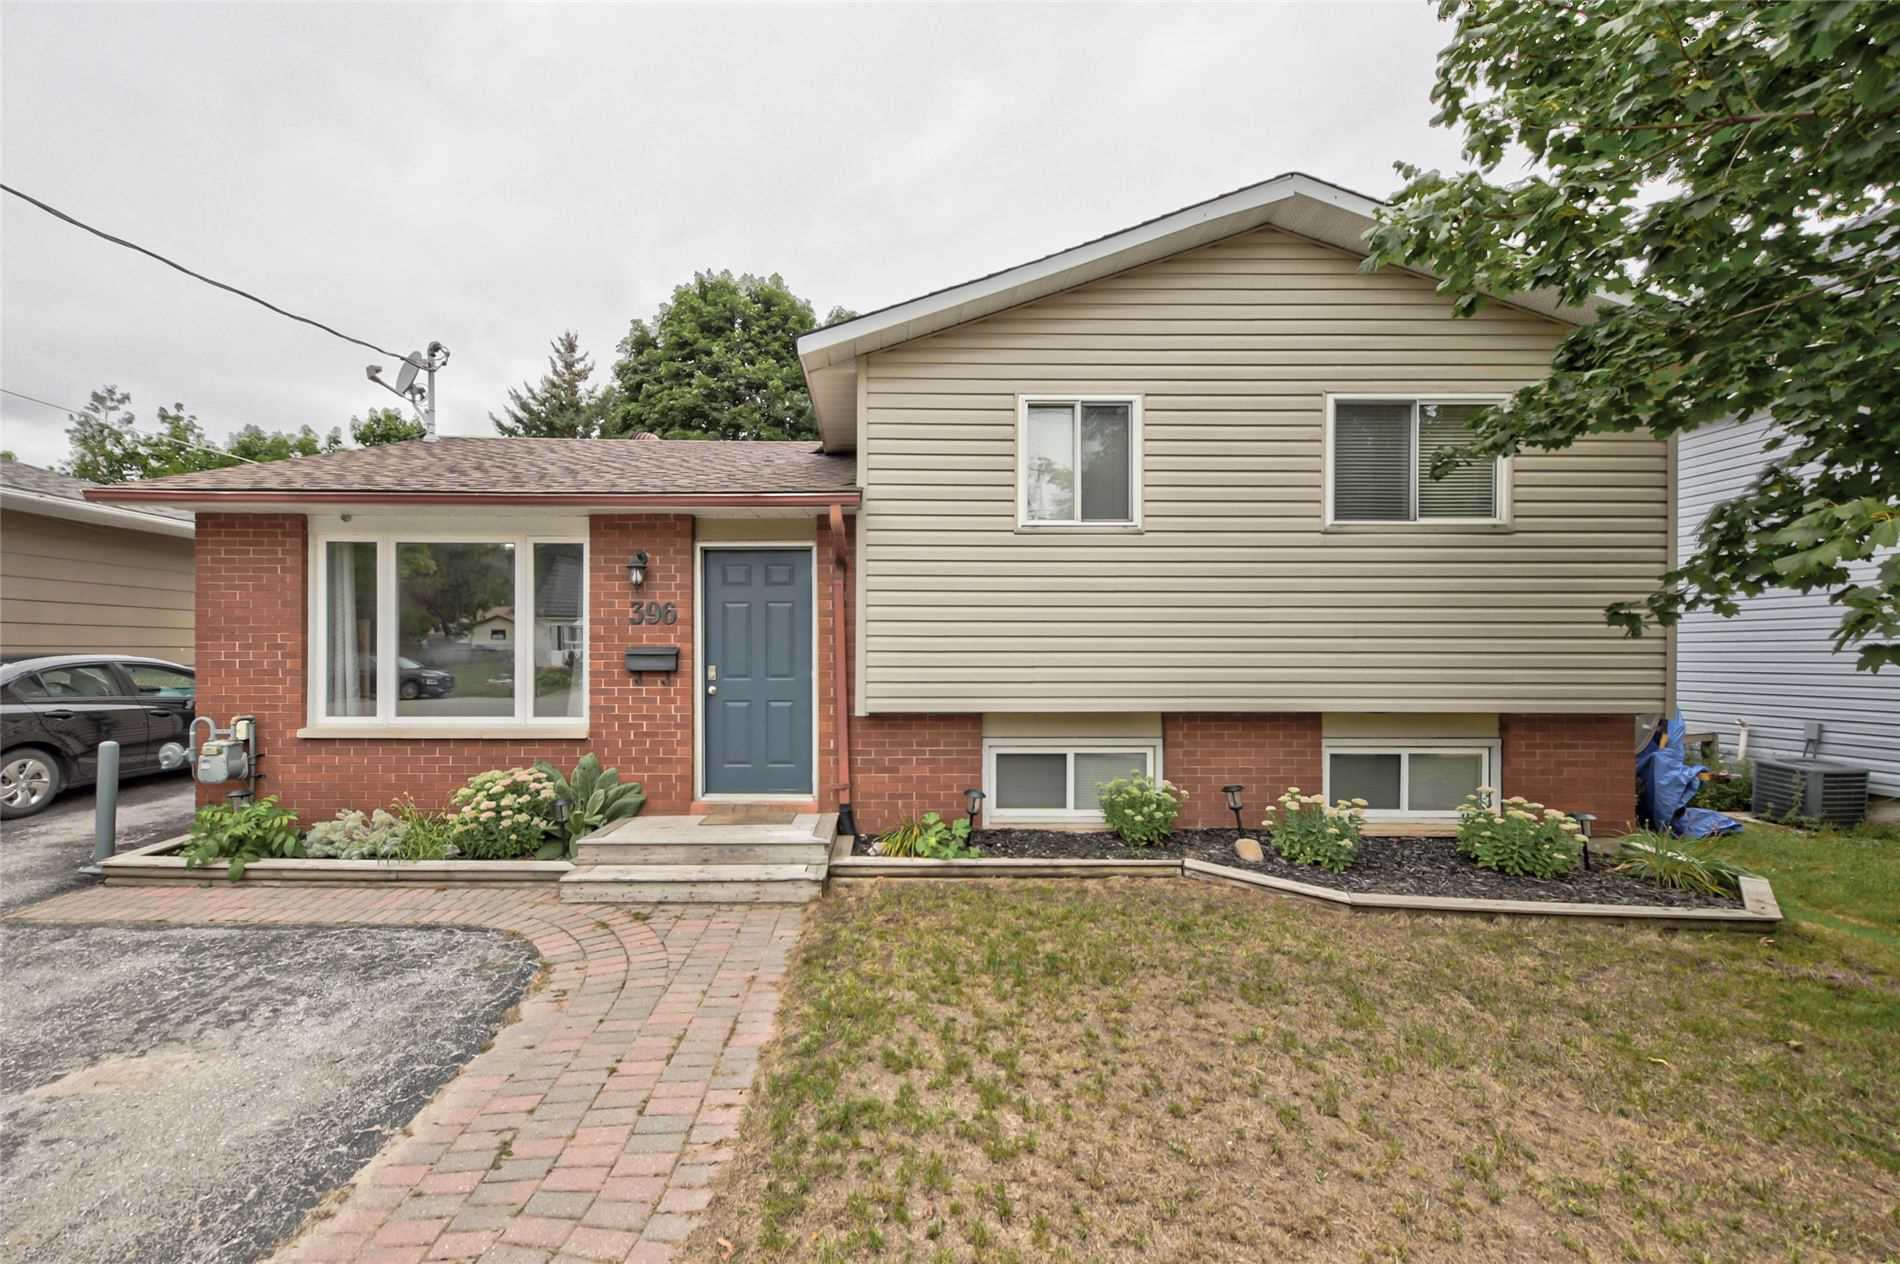 396 Mary St, Orillia, Ontario L3V 3G3, 3 Bedrooms Bedrooms, ,2 BathroomsBathrooms,Detached,For Sale,Mary,S5366026